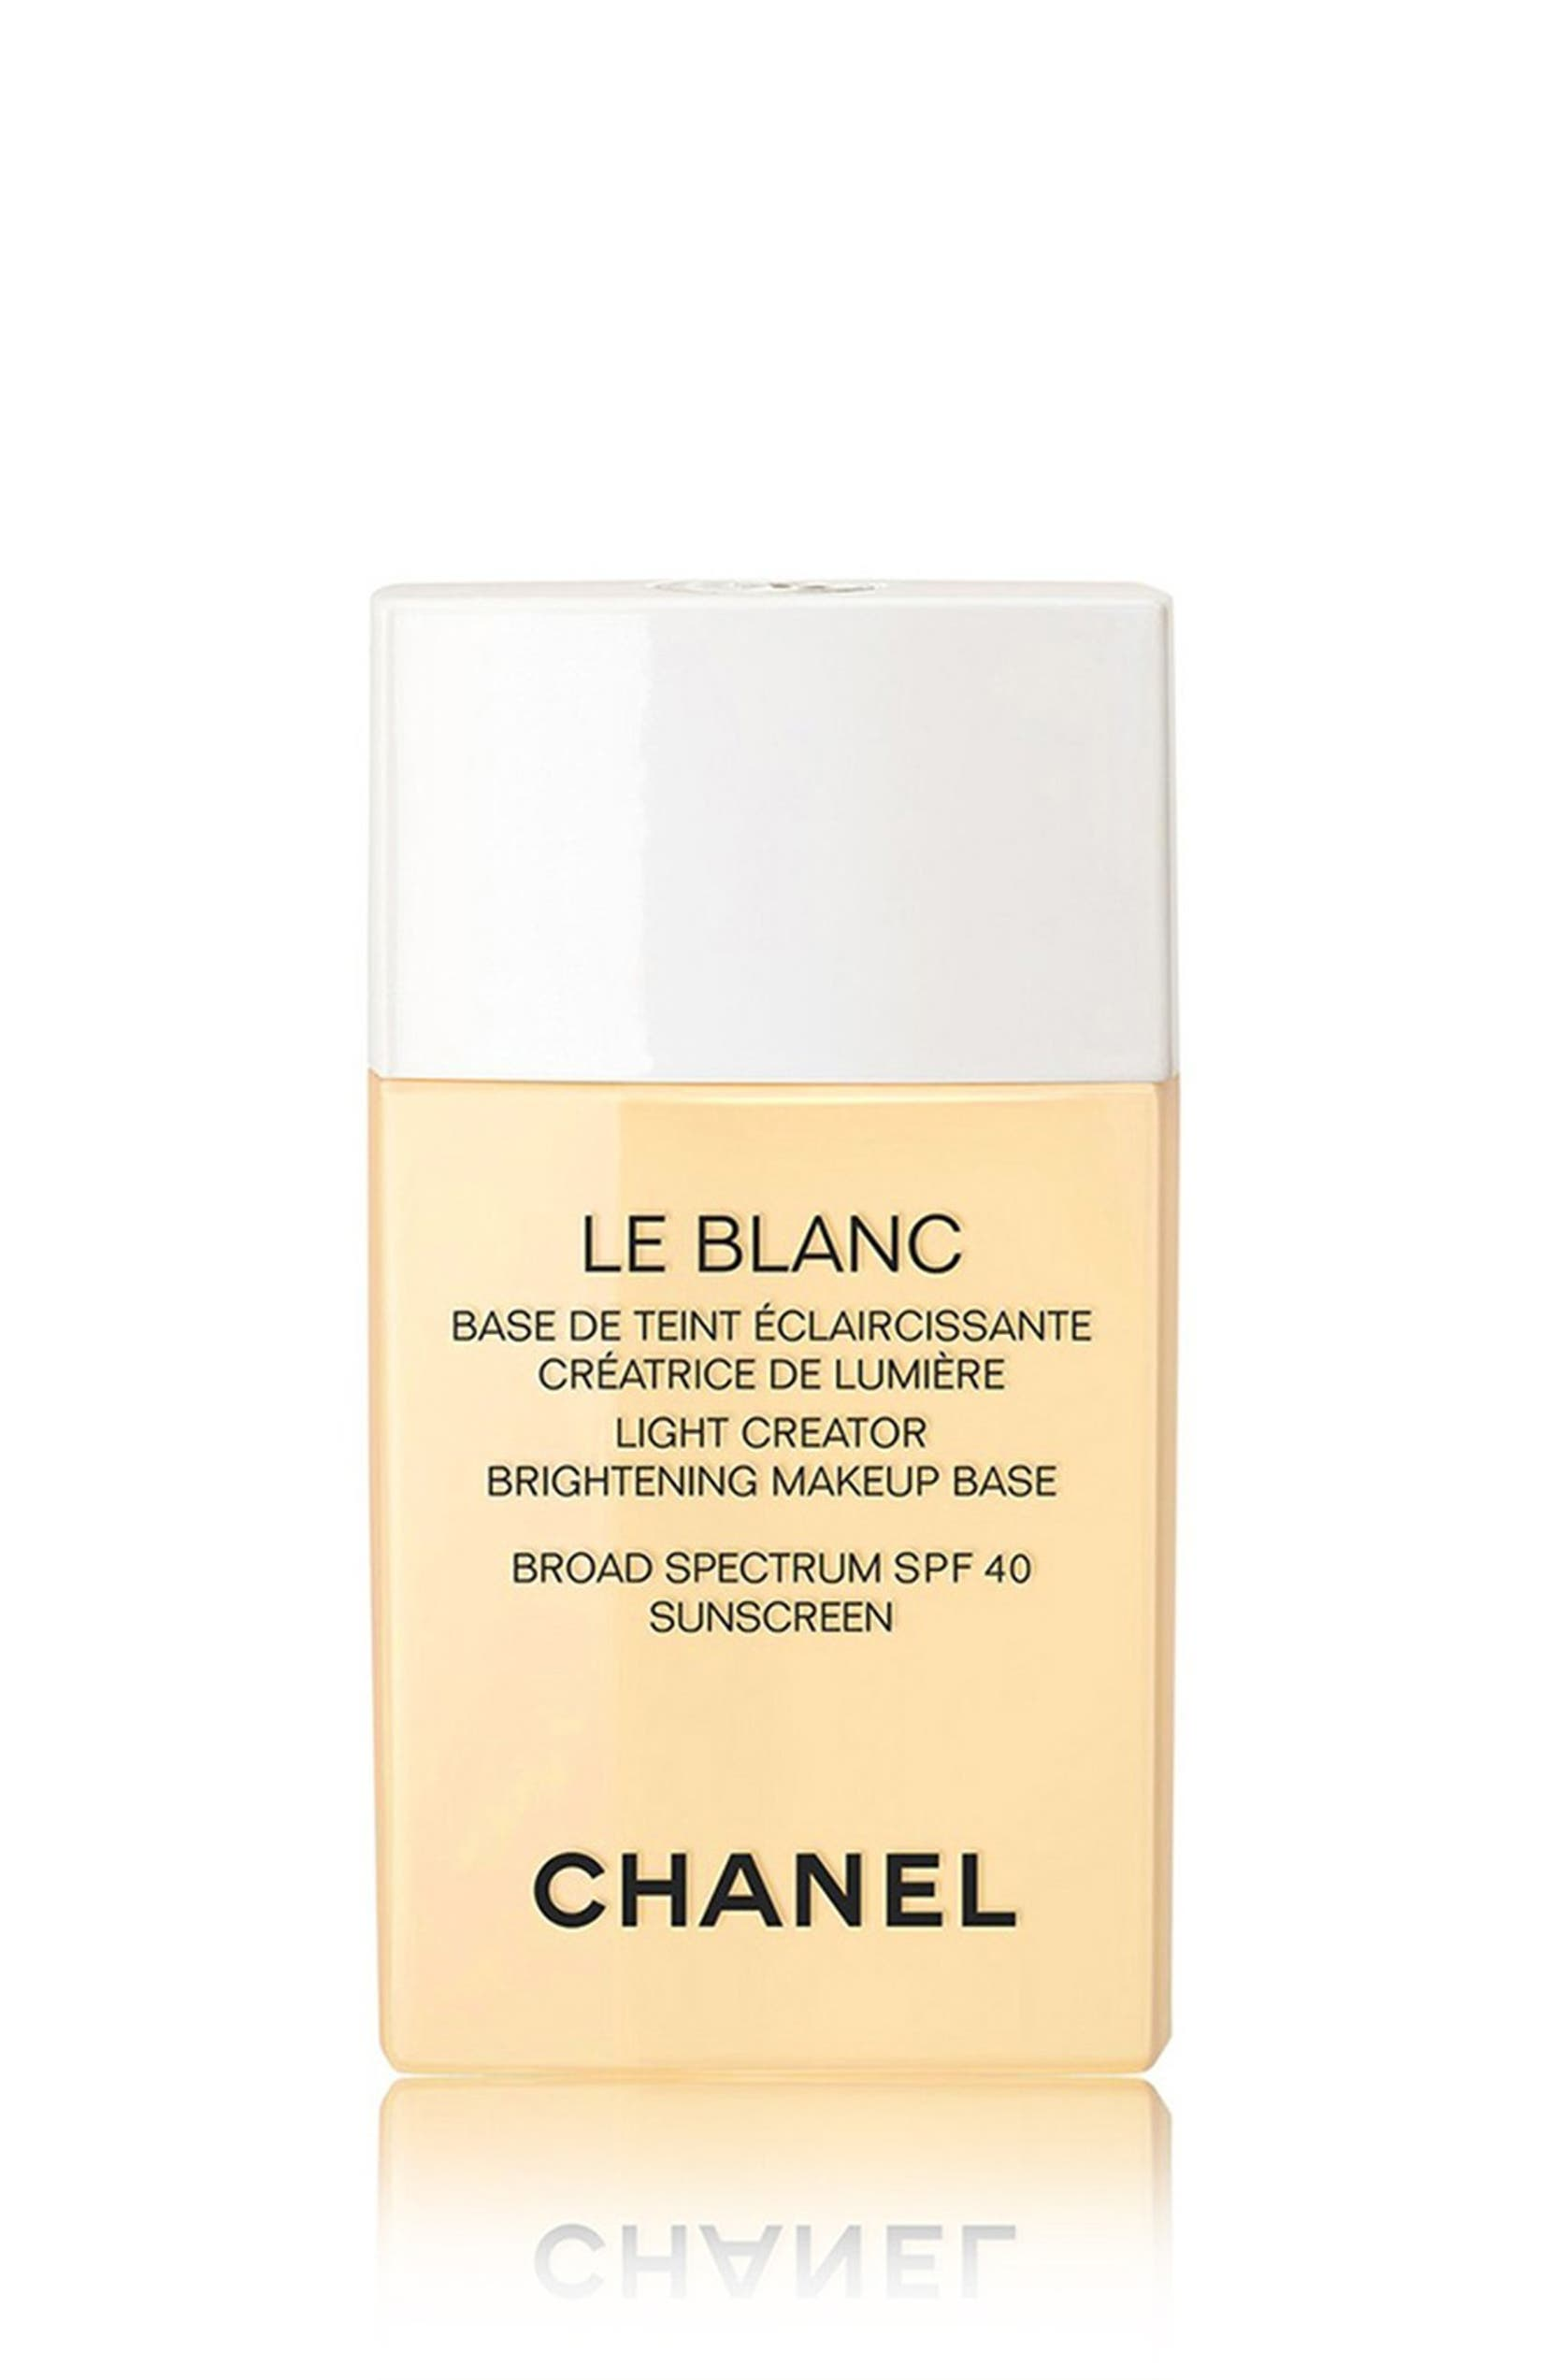 CHANEL LE BLANC LIGHT CREATOR Brightening Makeup Base Broad Spectrum ...